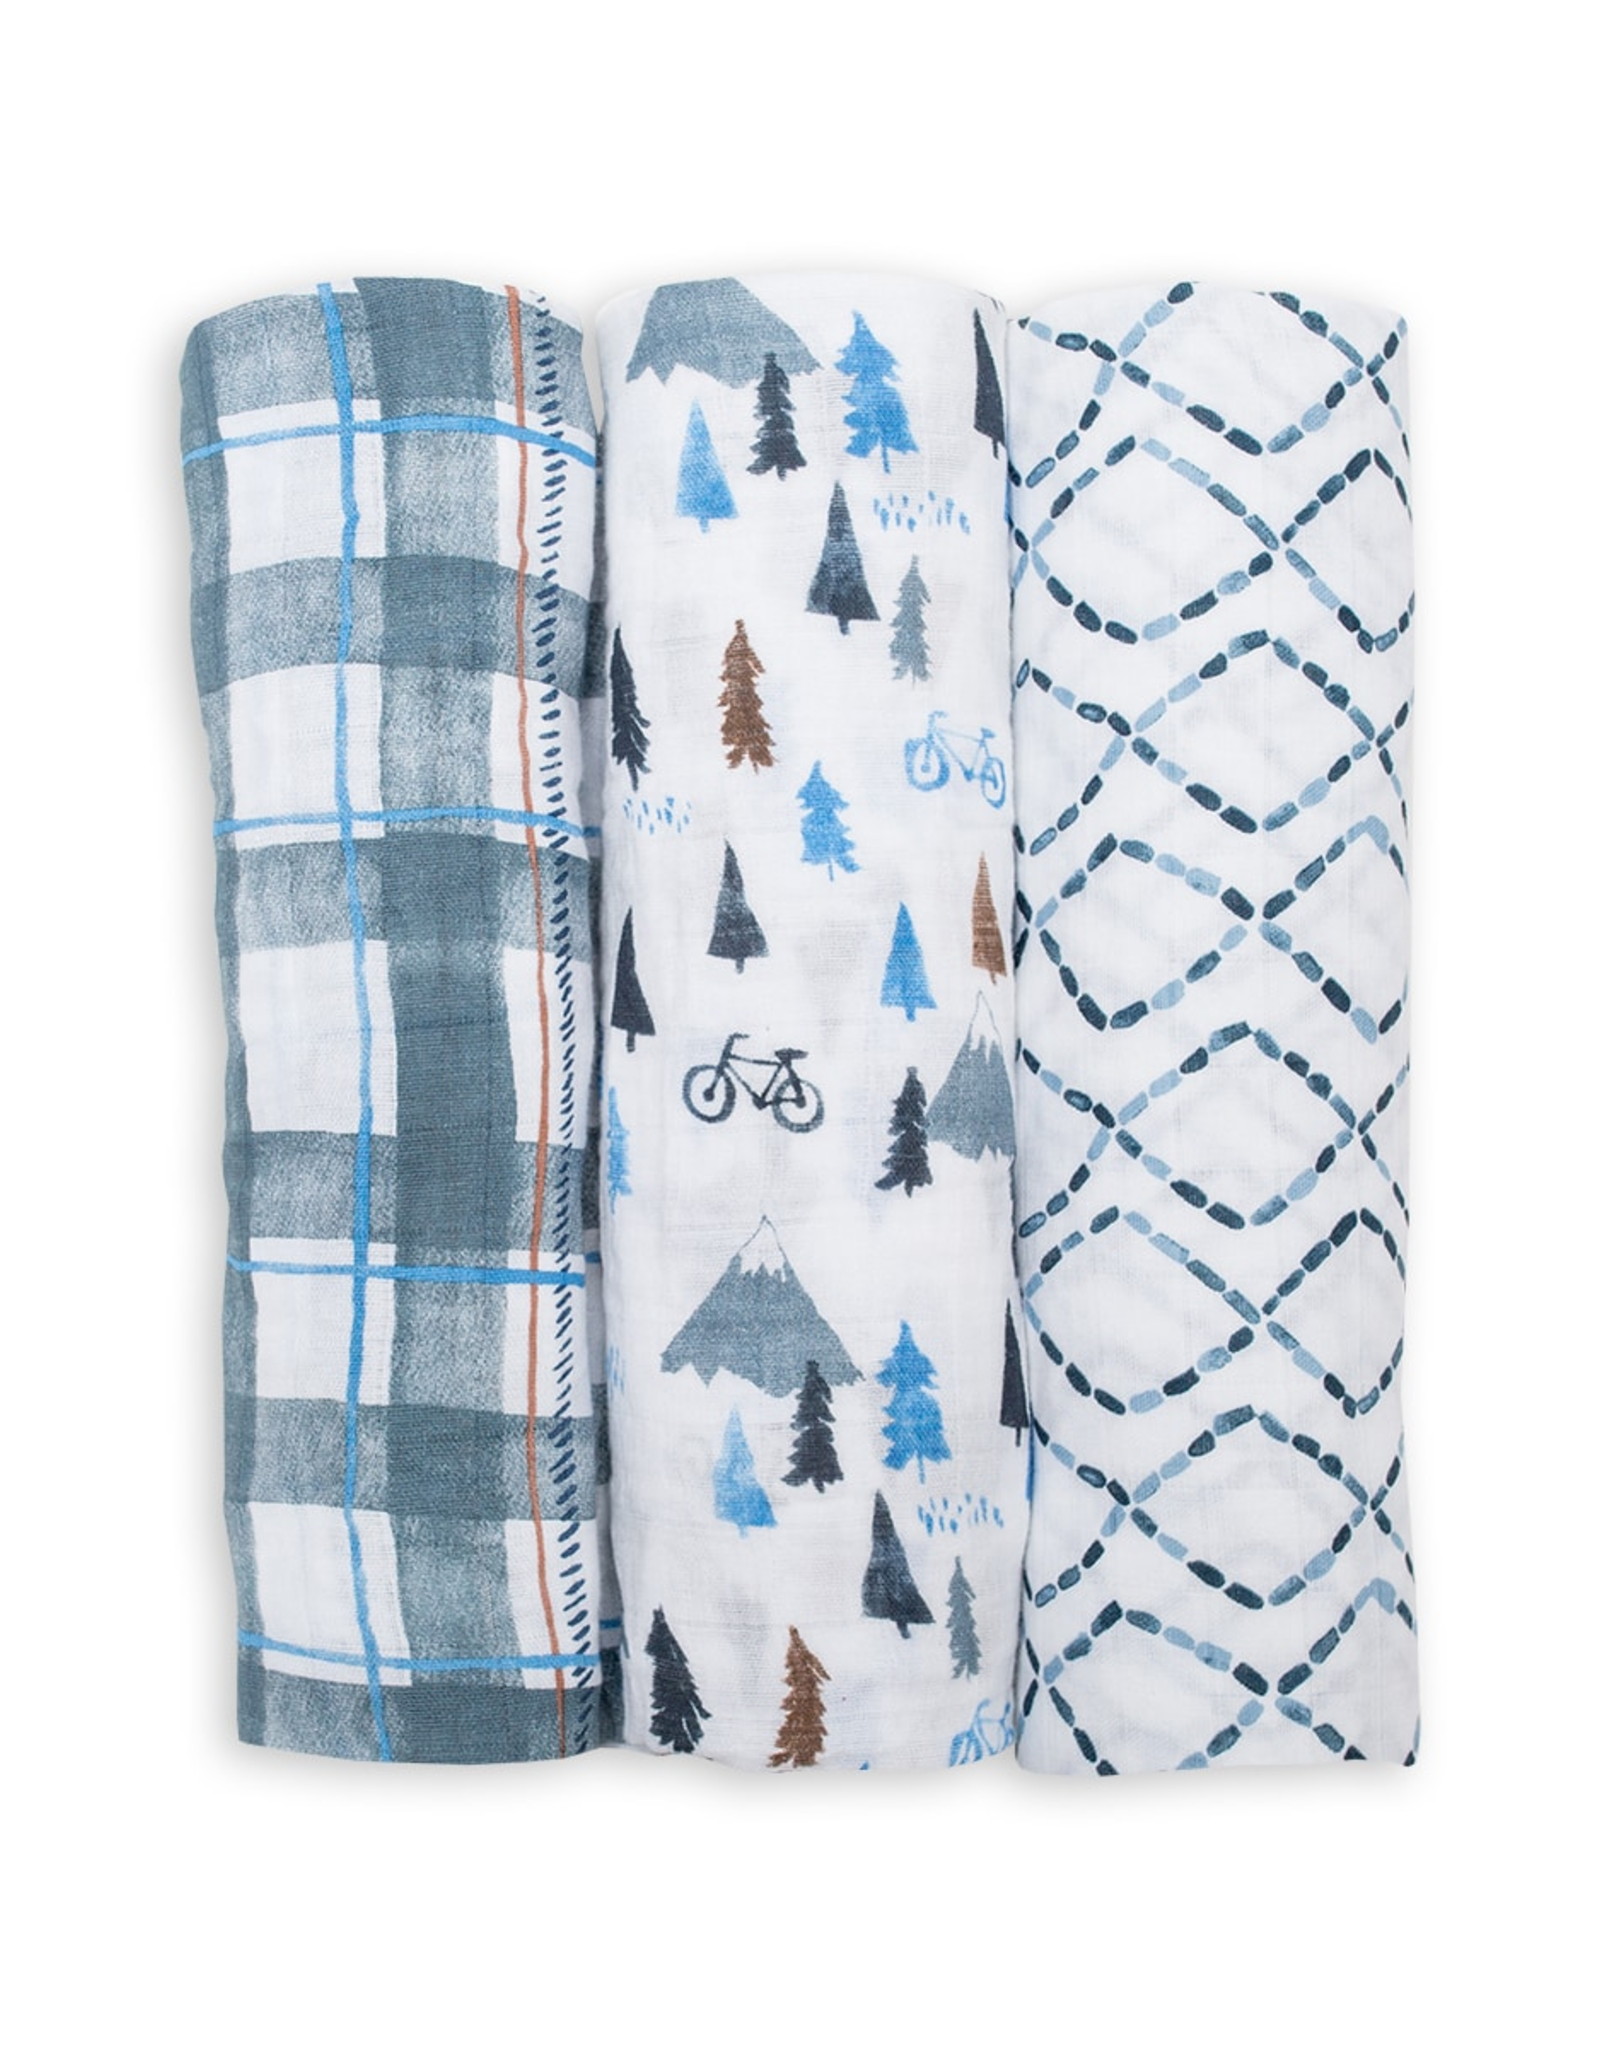 3PK Cotton Muslin - Navy Mountains